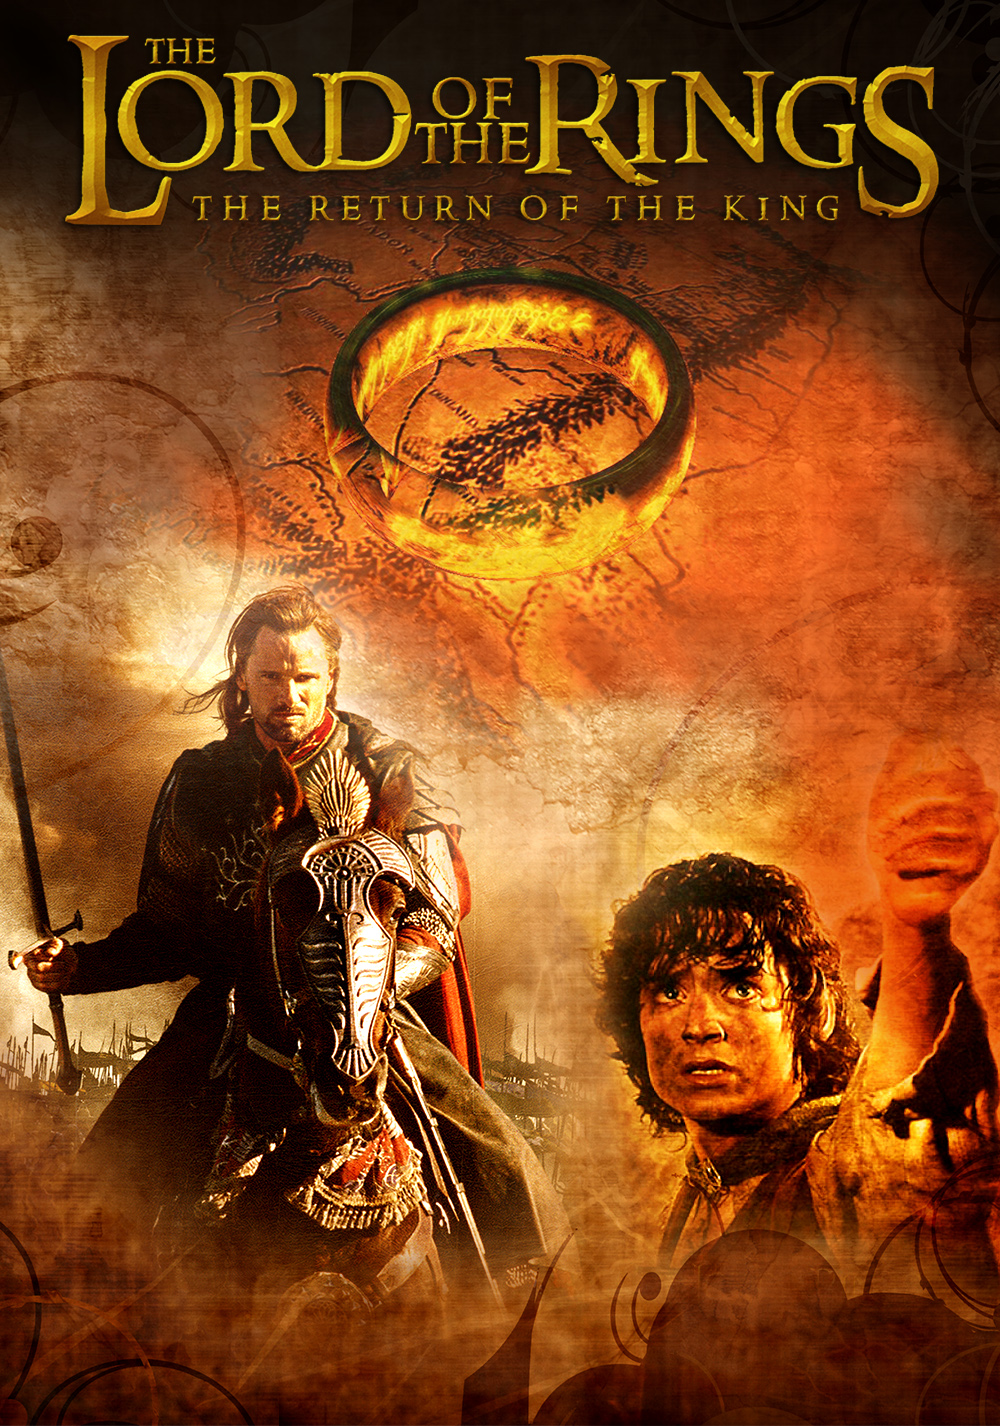 the virtues of fellowship courage wisdom and determination in lord of the rings return of the king a The lord of the rings: the fellowship of the ring (new line cinema, 2001), the two towers (new line cinema, 2002), and the return of the king (new line cinema, 2003), all directed by peter jackson based on the novels by j r r tolkien (houghton mifflin) screenplay written by frances walsh, philippa boyens, and peter jackson rated pg.